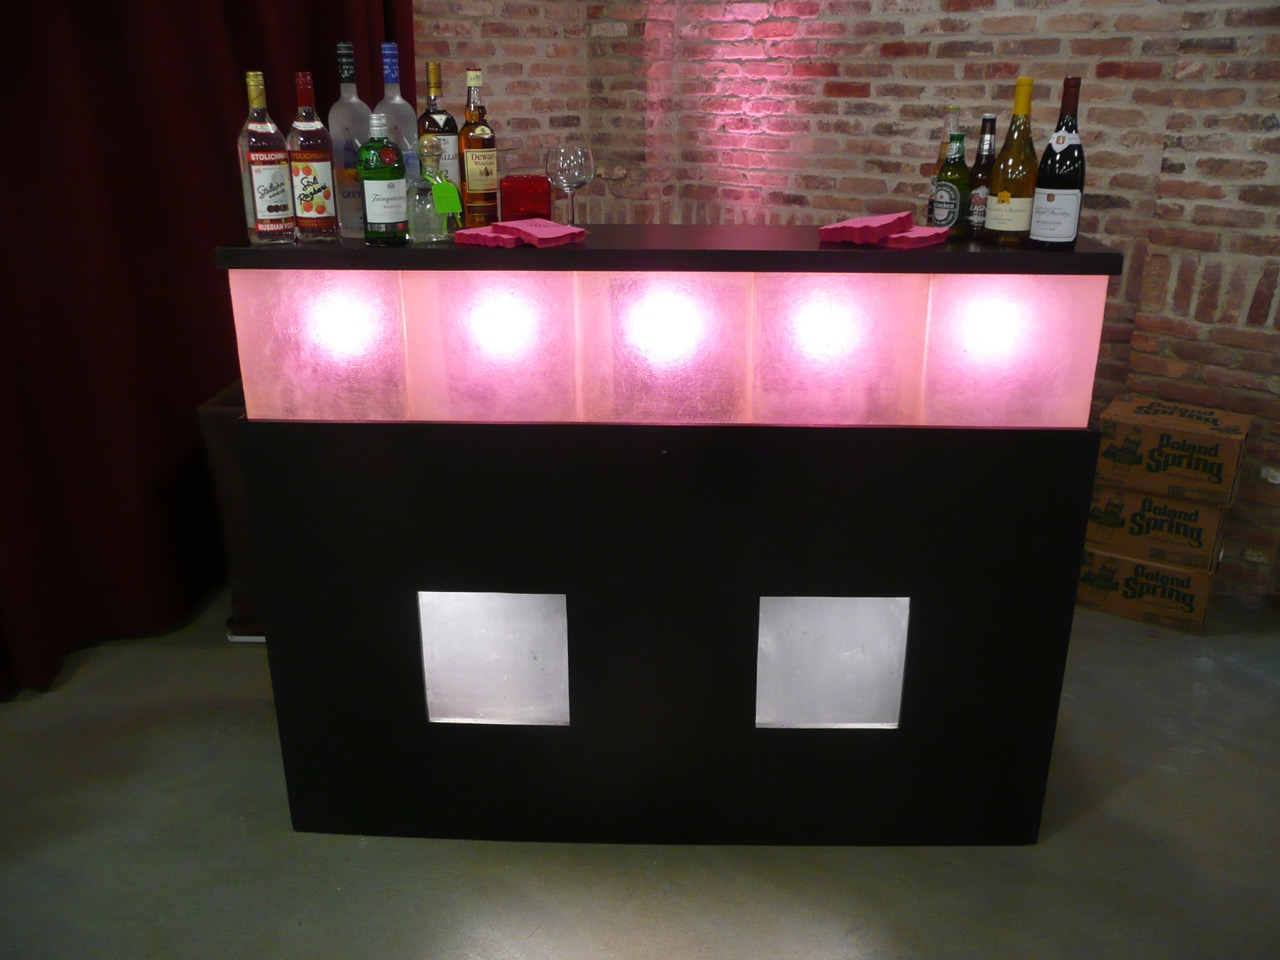 Black+and+Pink+Glowing+Bar+Rental+for+Events+-+Bar+Rental+NJ+NYC+-+Eggsotic+Events+Event+Design++-+1.jpg